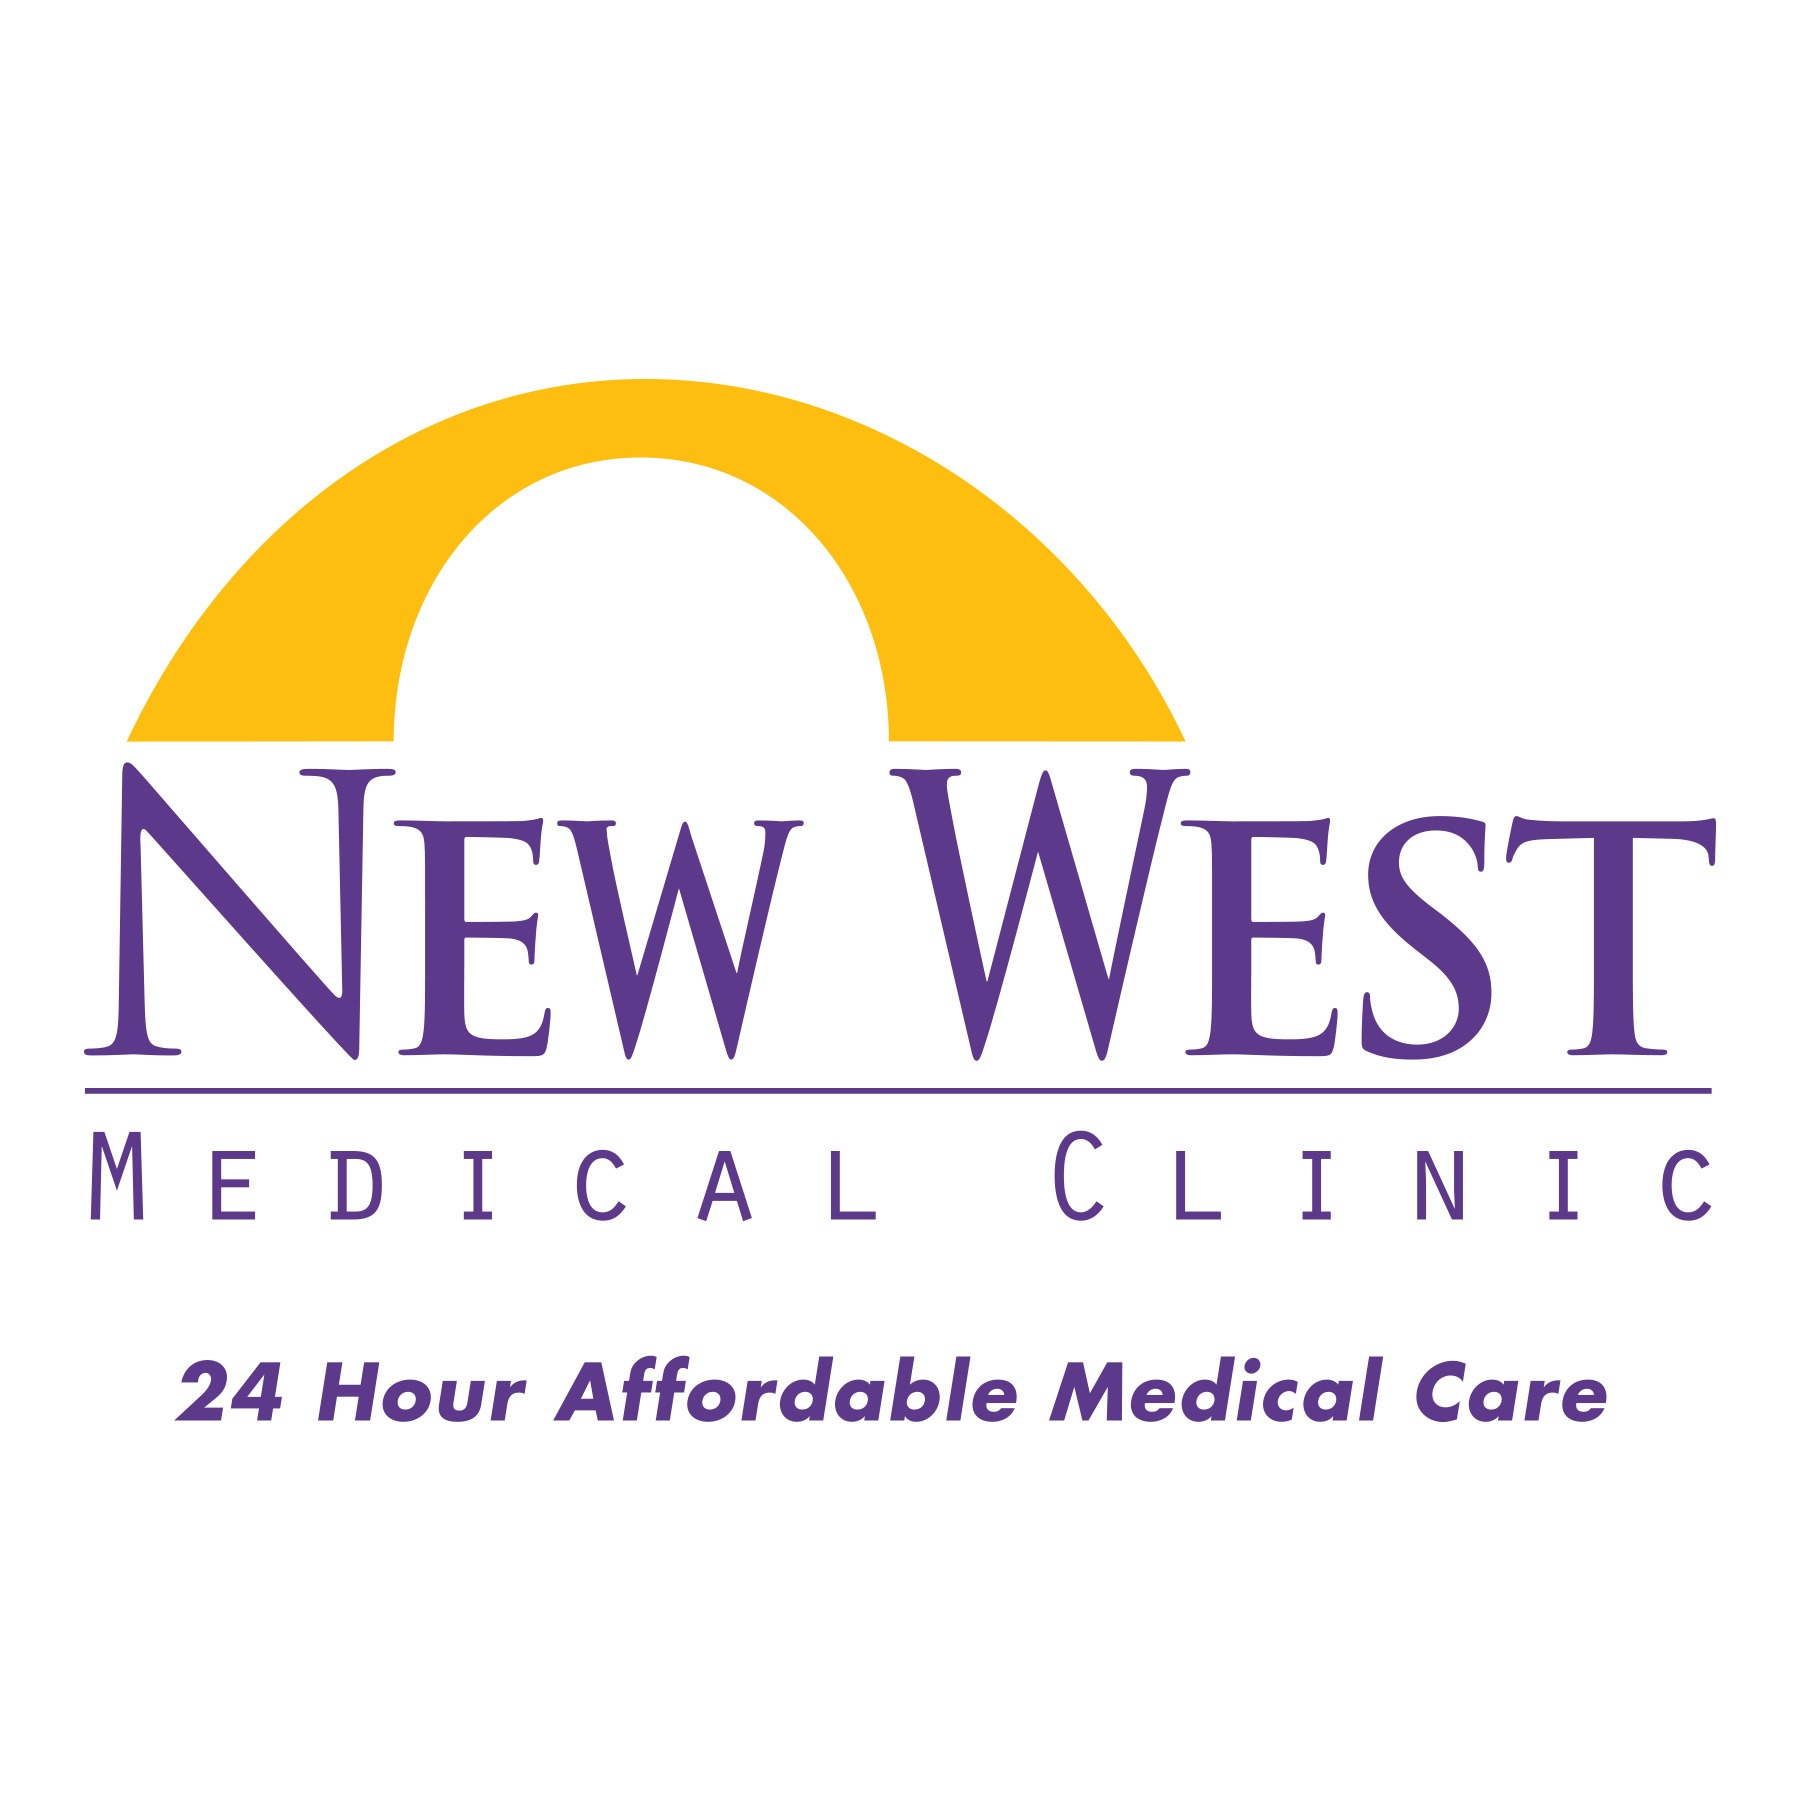 New West Medical Clinic Logo